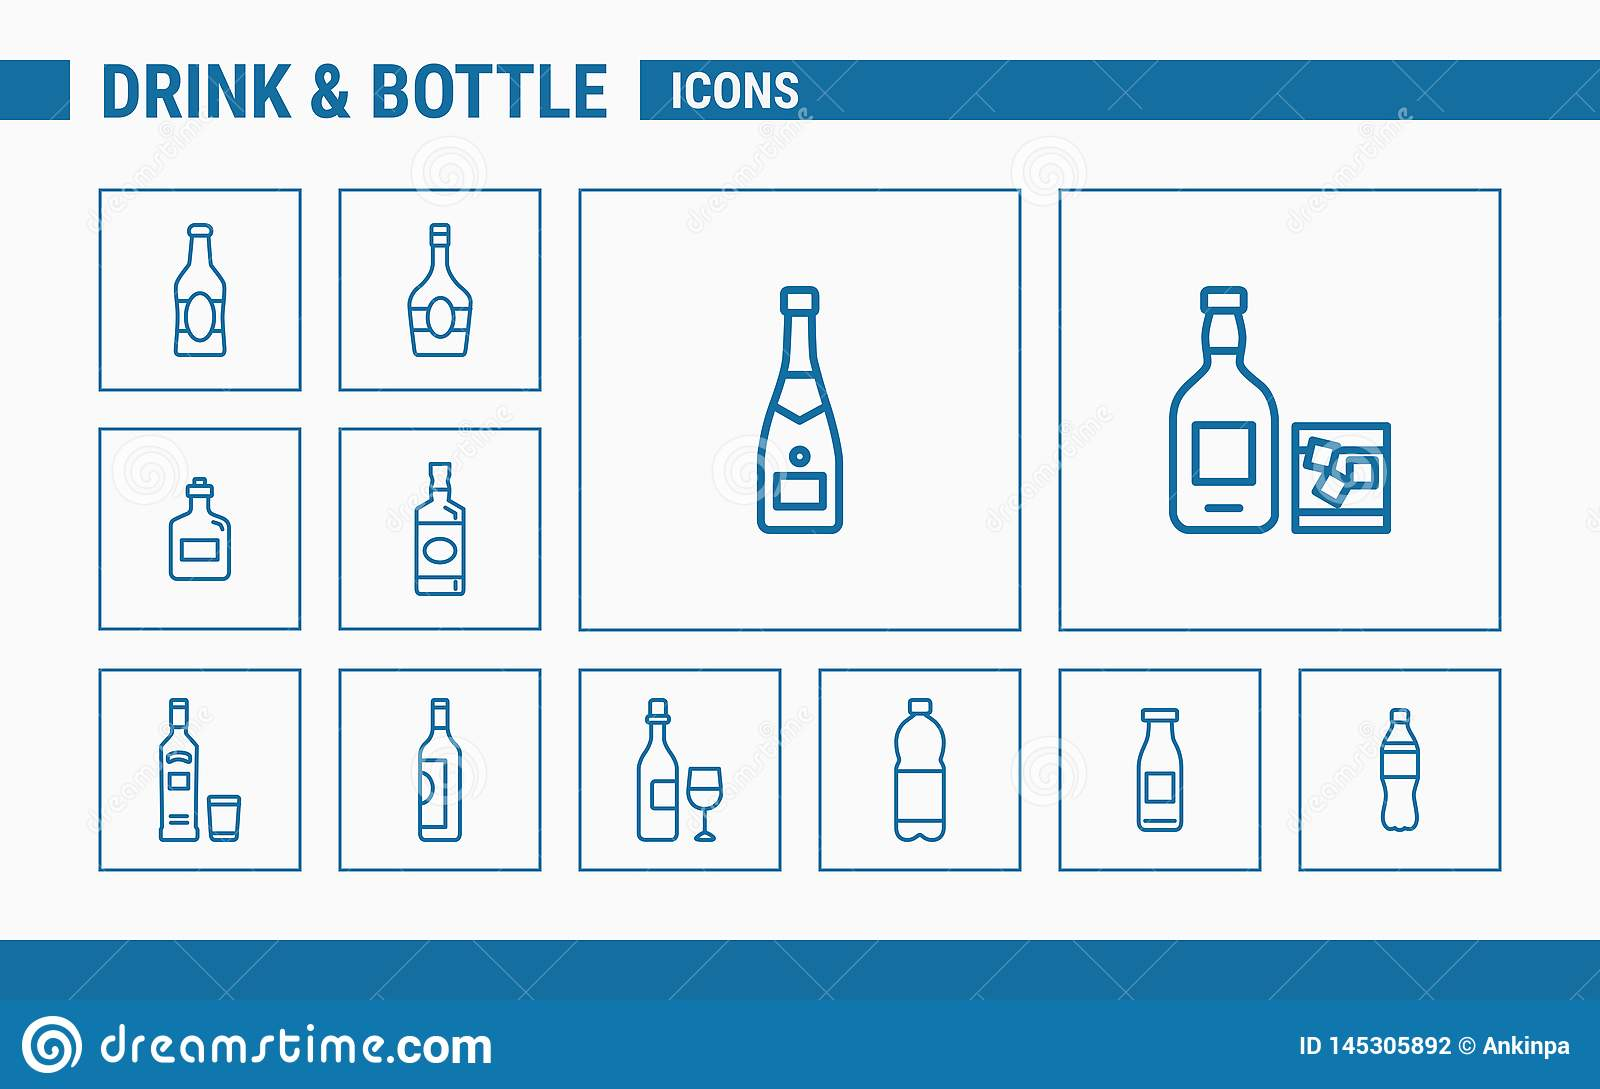 Drink & Bottle Icons - Set Web & Mobile 01